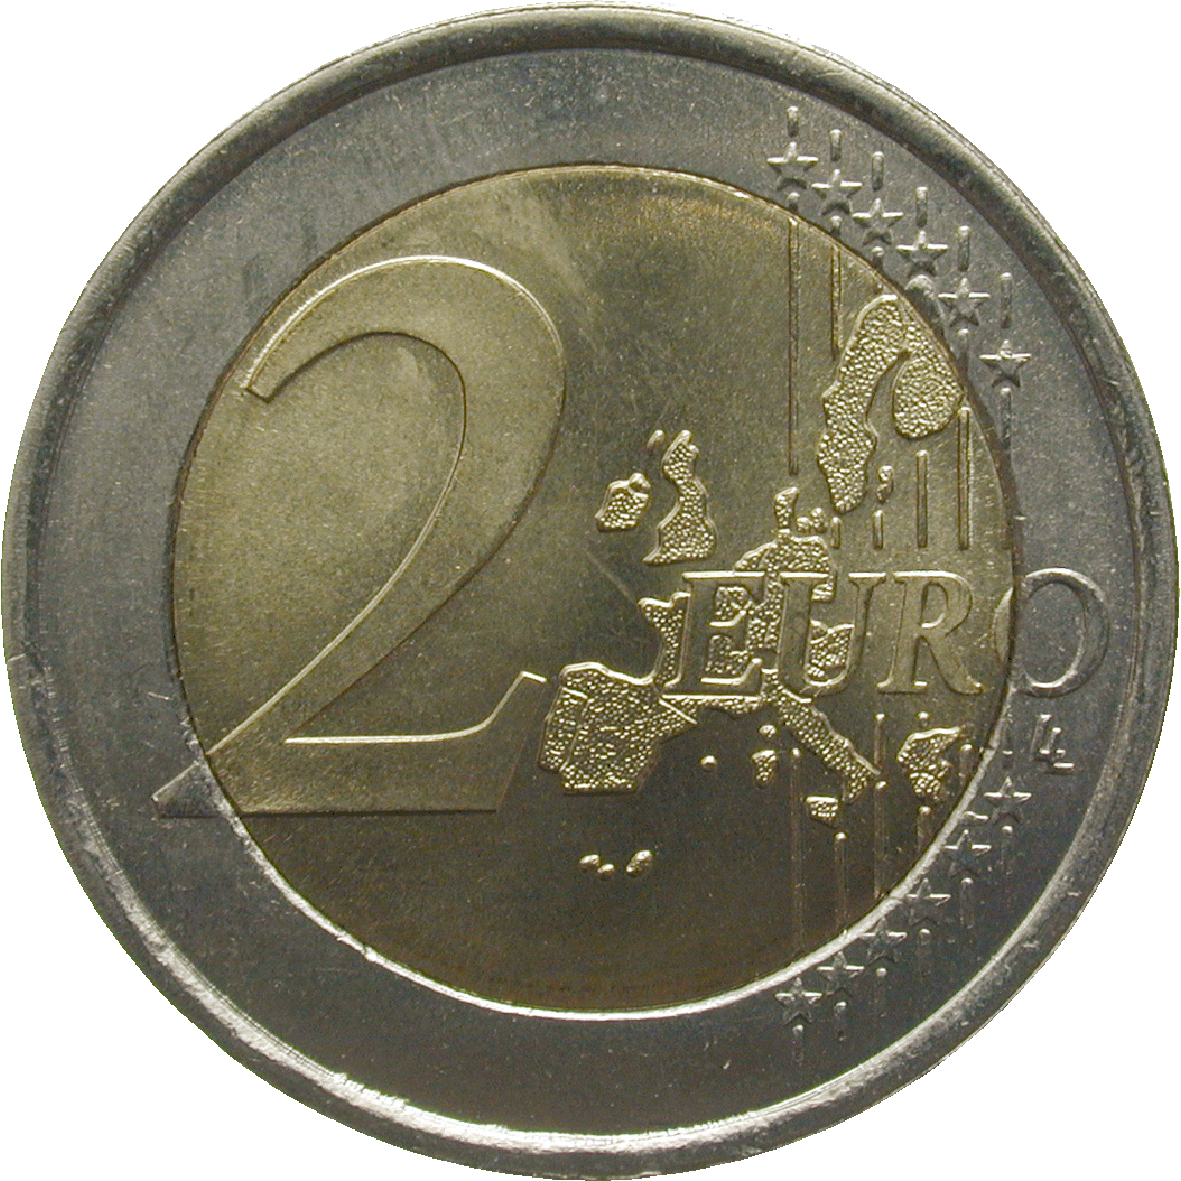 Republik Portugal, 2 Euro 2002 (obverse)